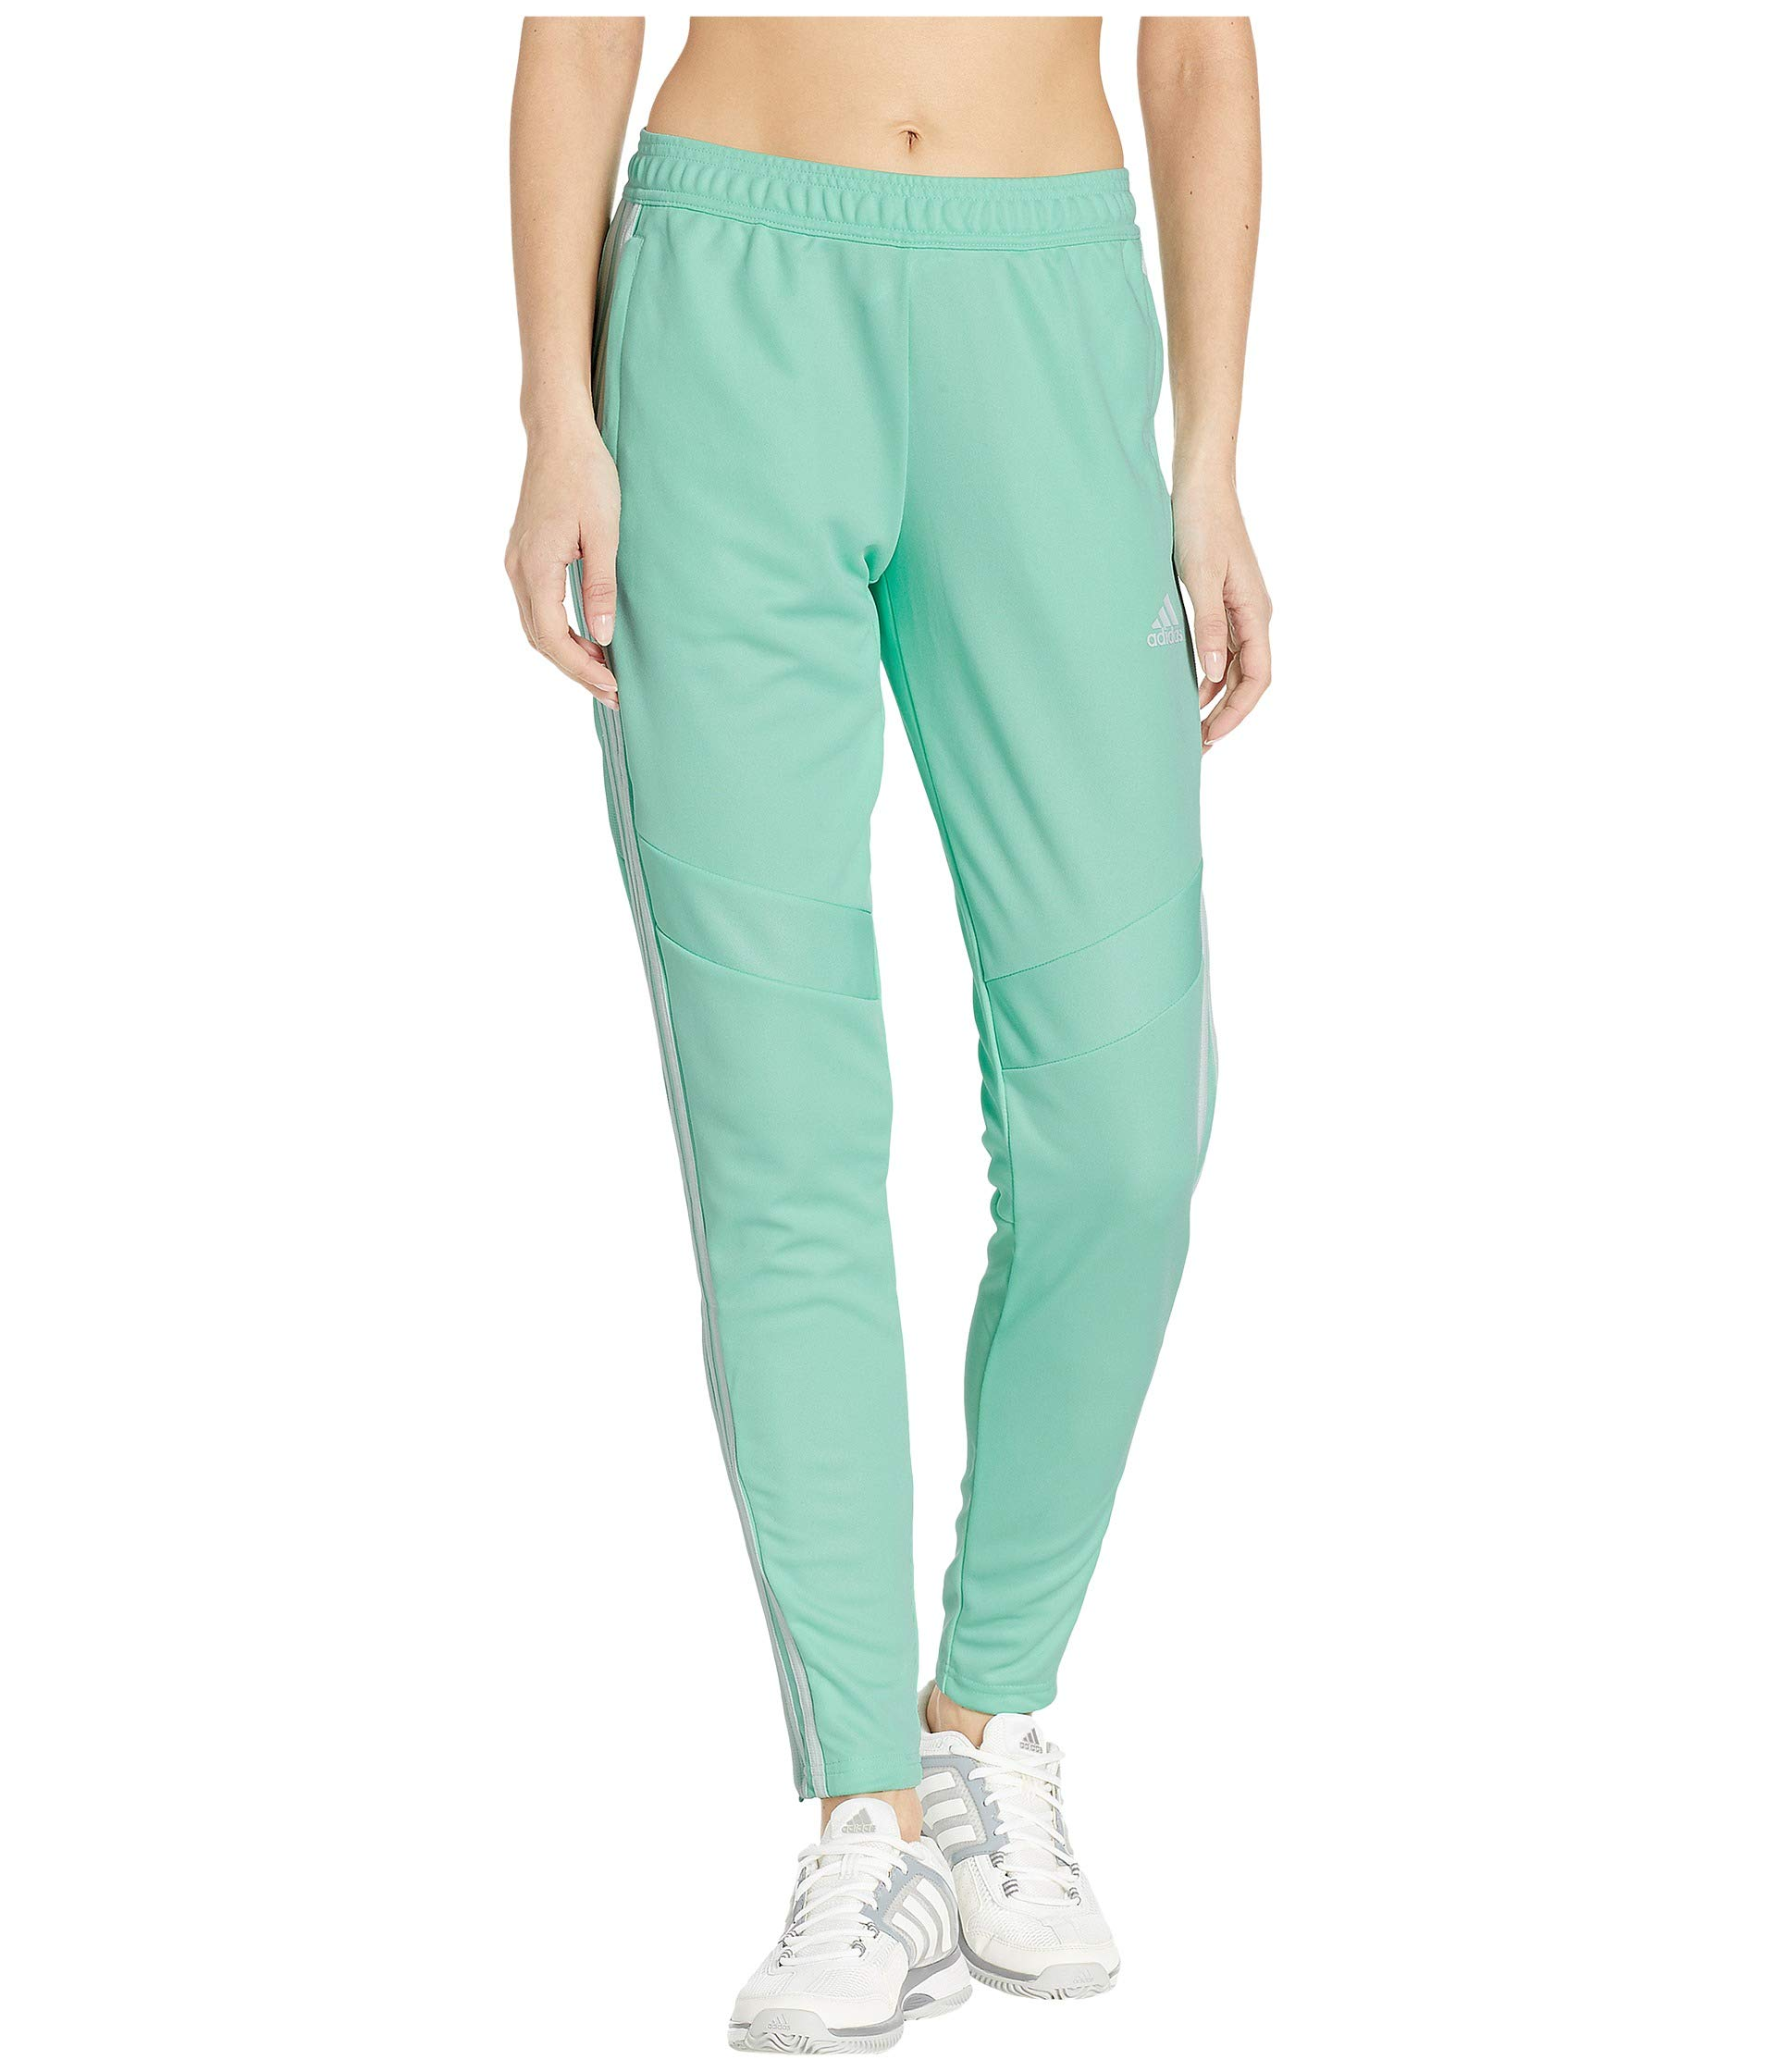 adidas Women's Tiro '19 Pants Clear Mint/White X-Large 30 by adidas